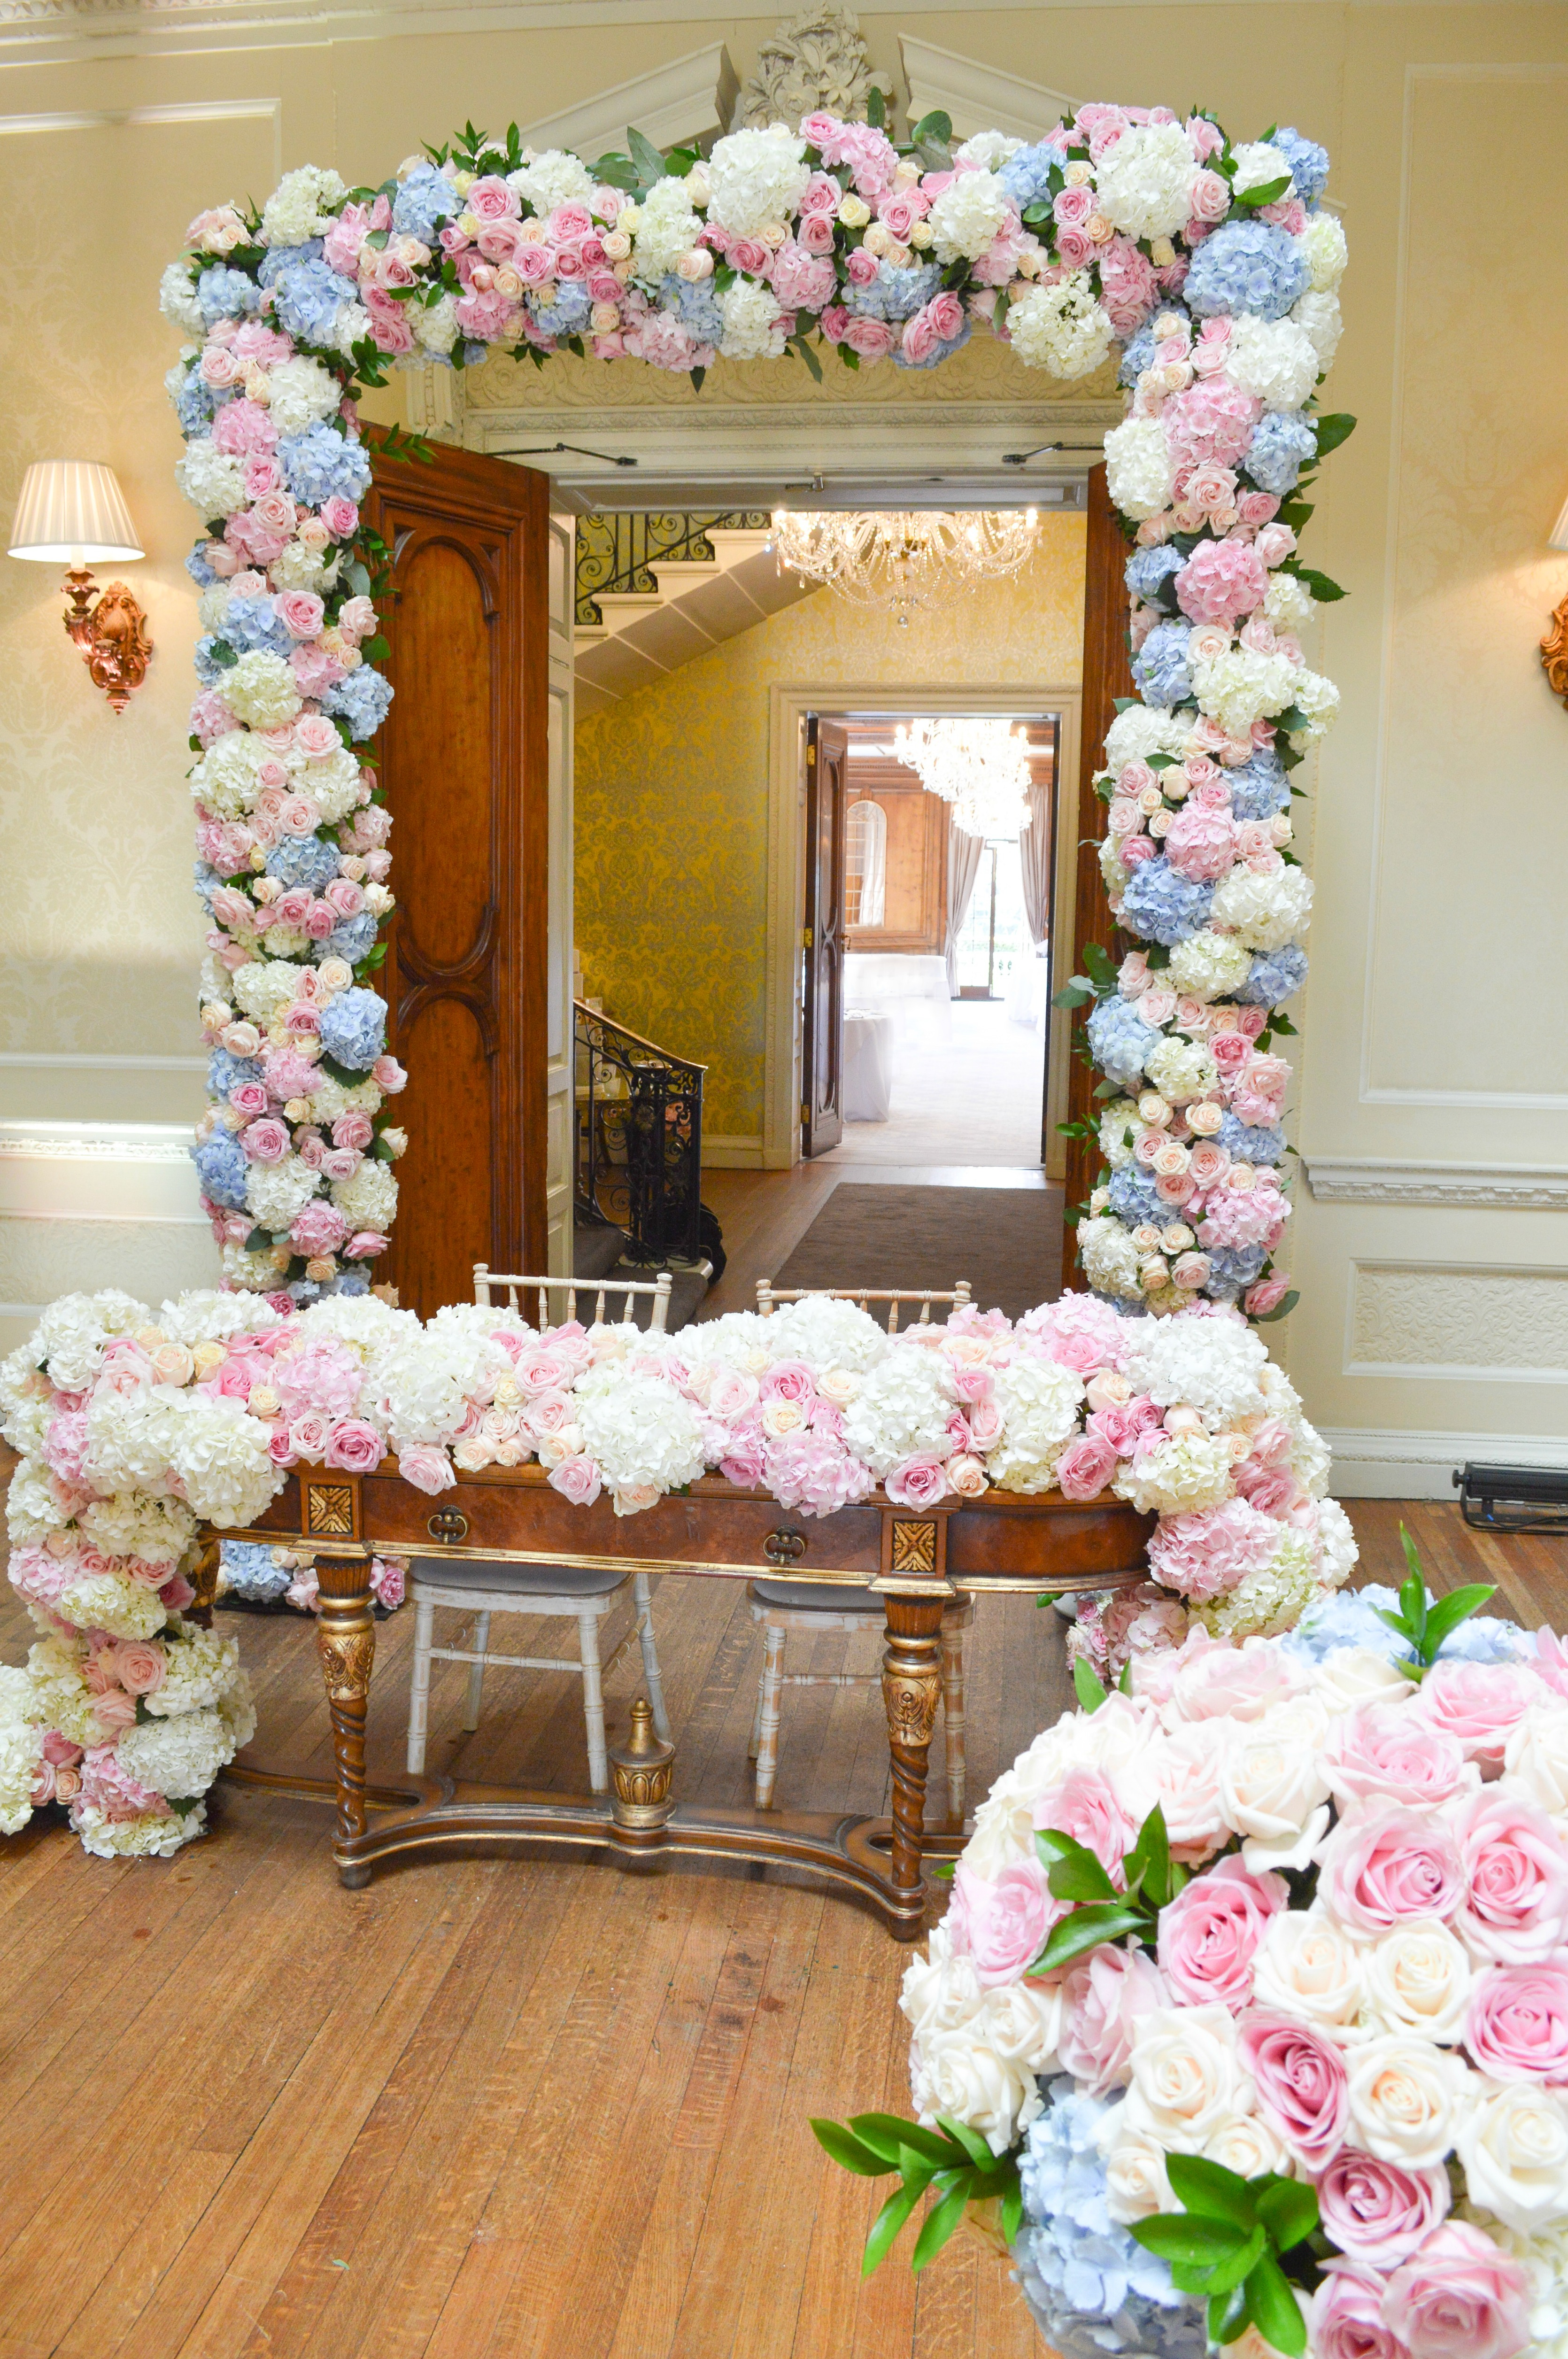 Dusty blue and pink wedding flower arch registrar table head toptable floral garland wedding ceremony aisle tall centrepieces Cherie Kelly cakes London Hedsor House 2